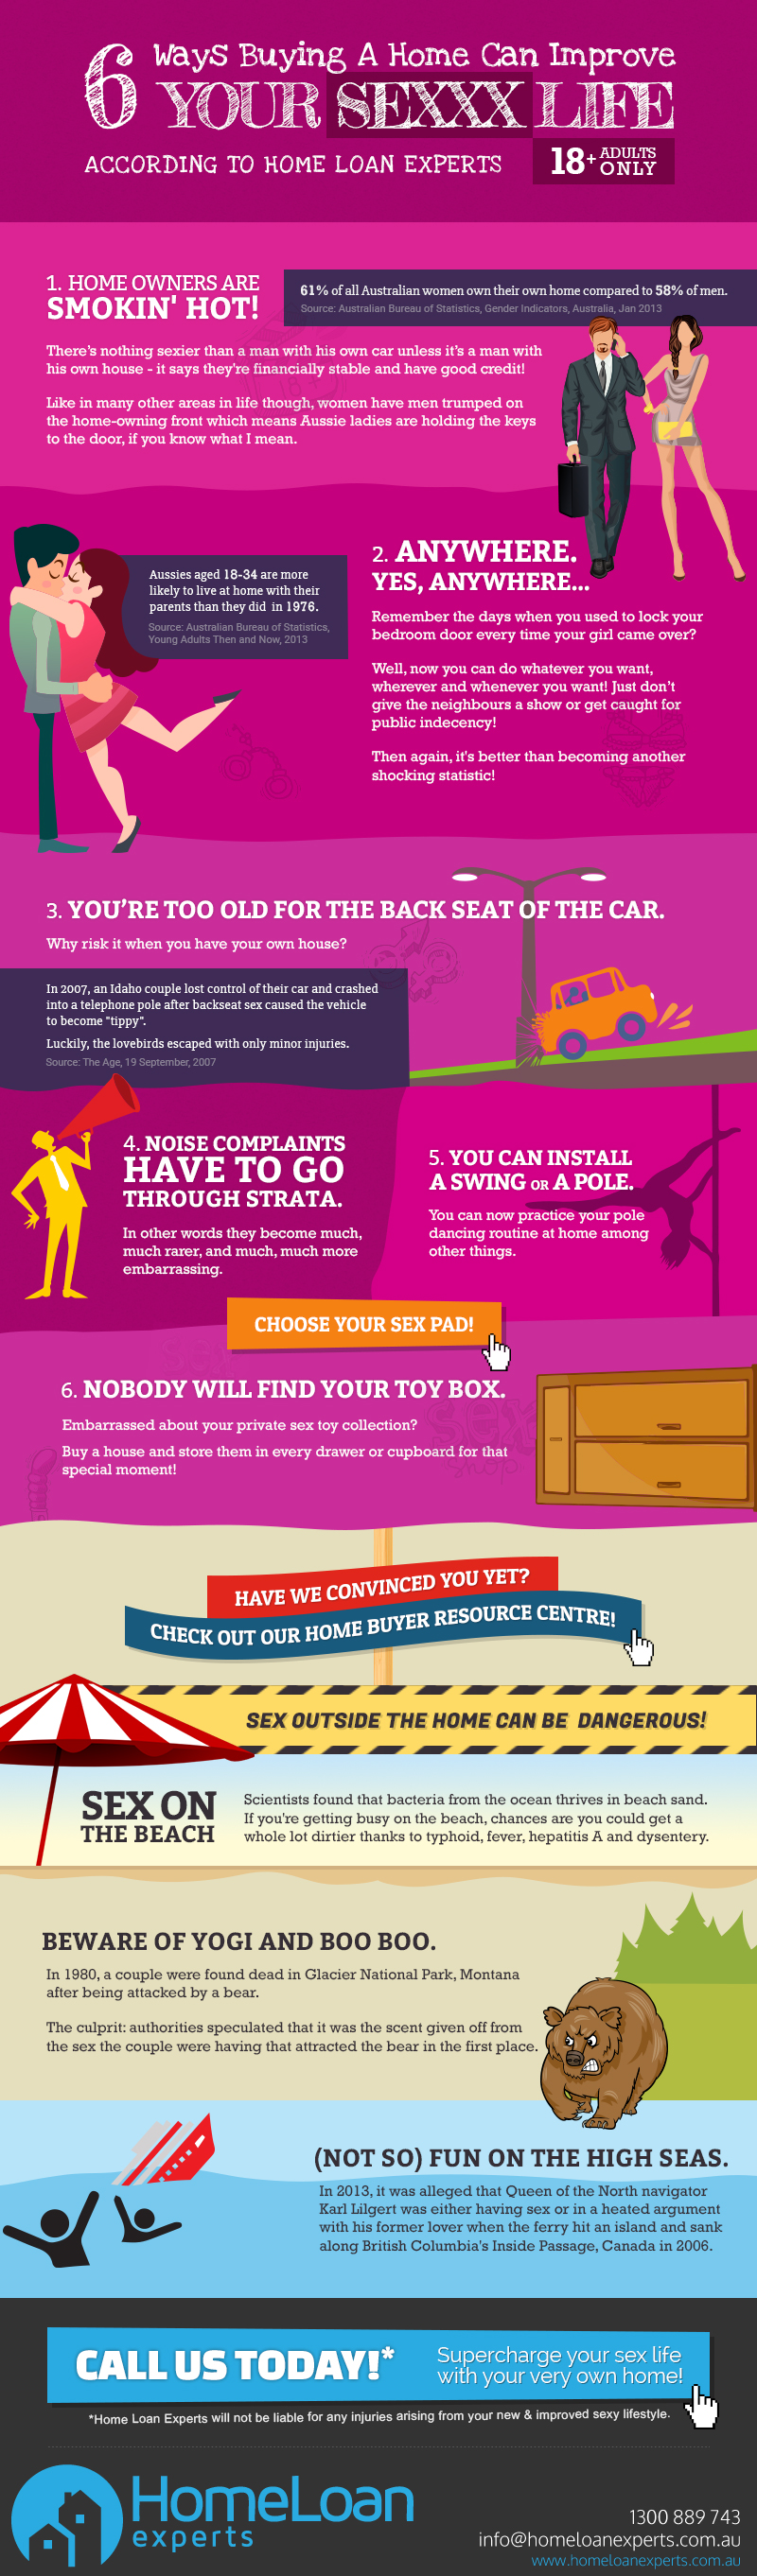 6 ways buying a home can improve your sex life infographic